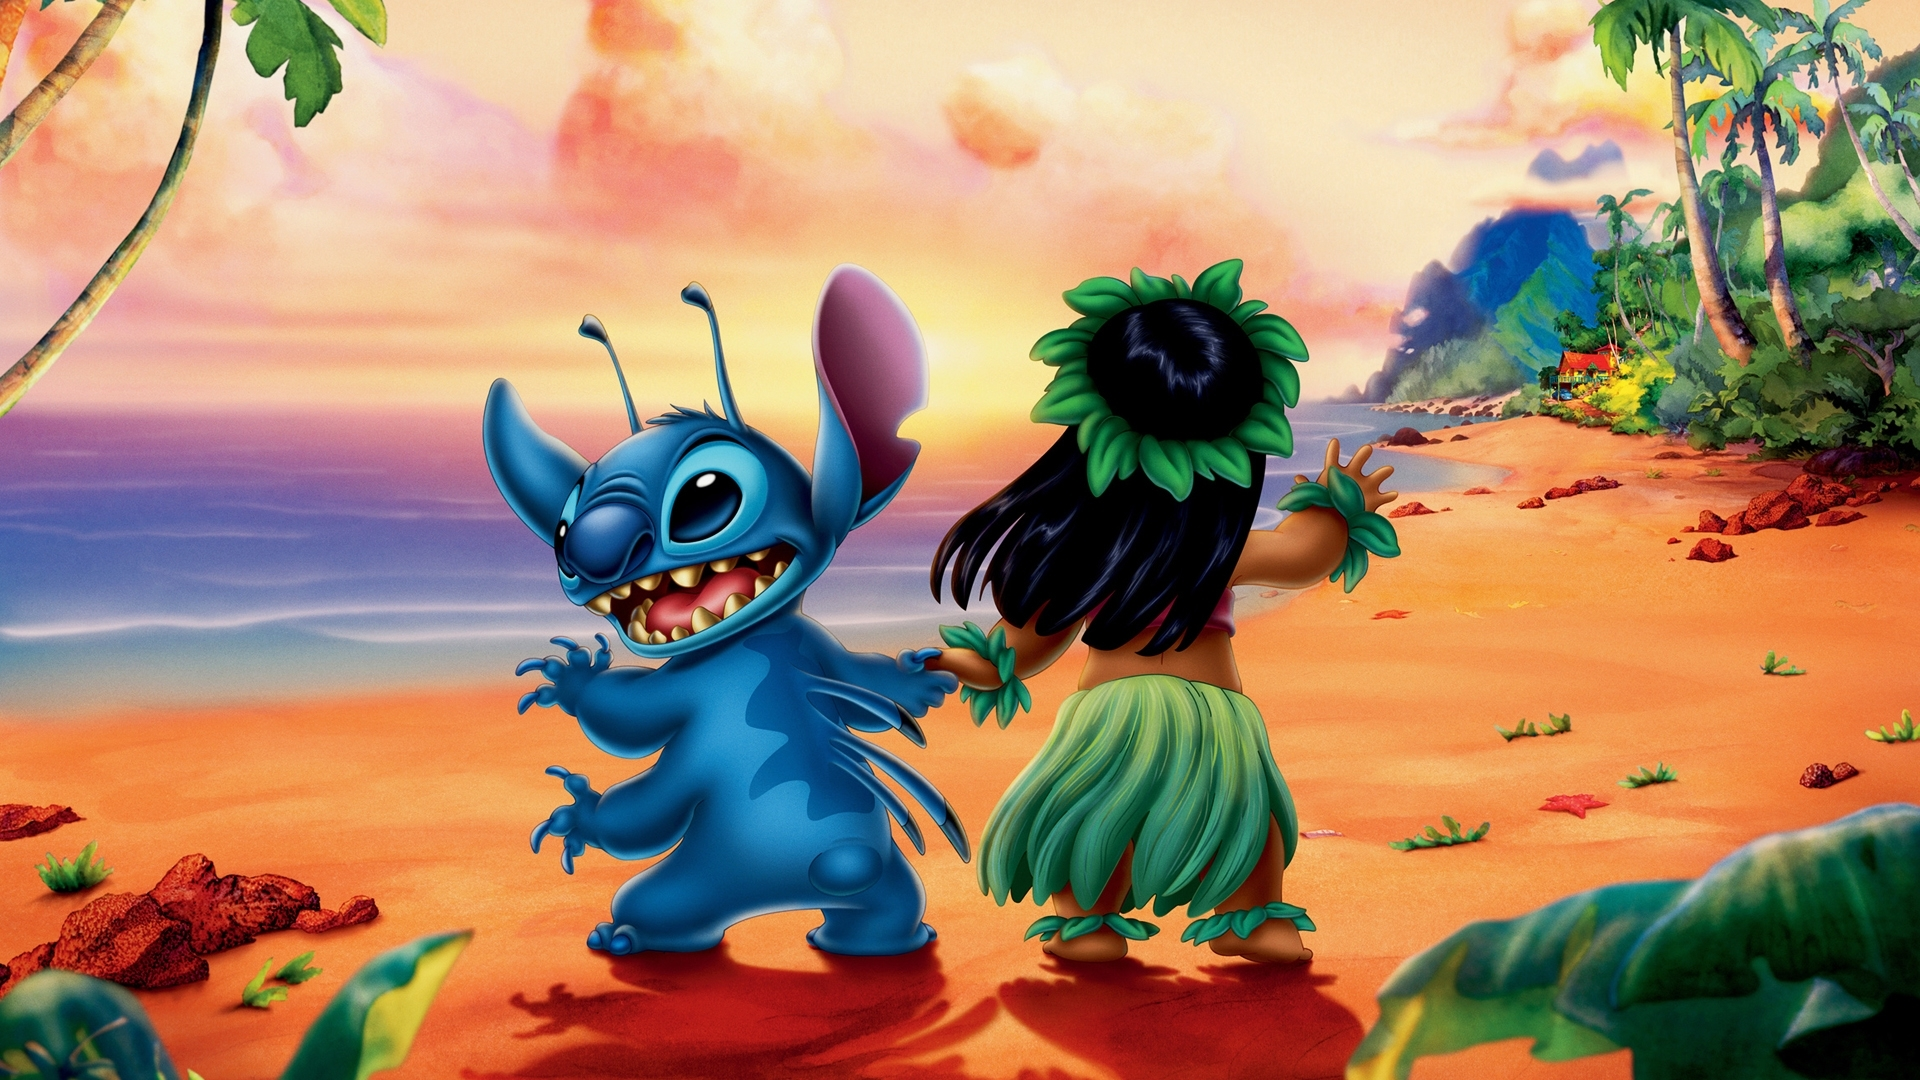 lilo and stitch wallpaper for android | desktop wallpapers